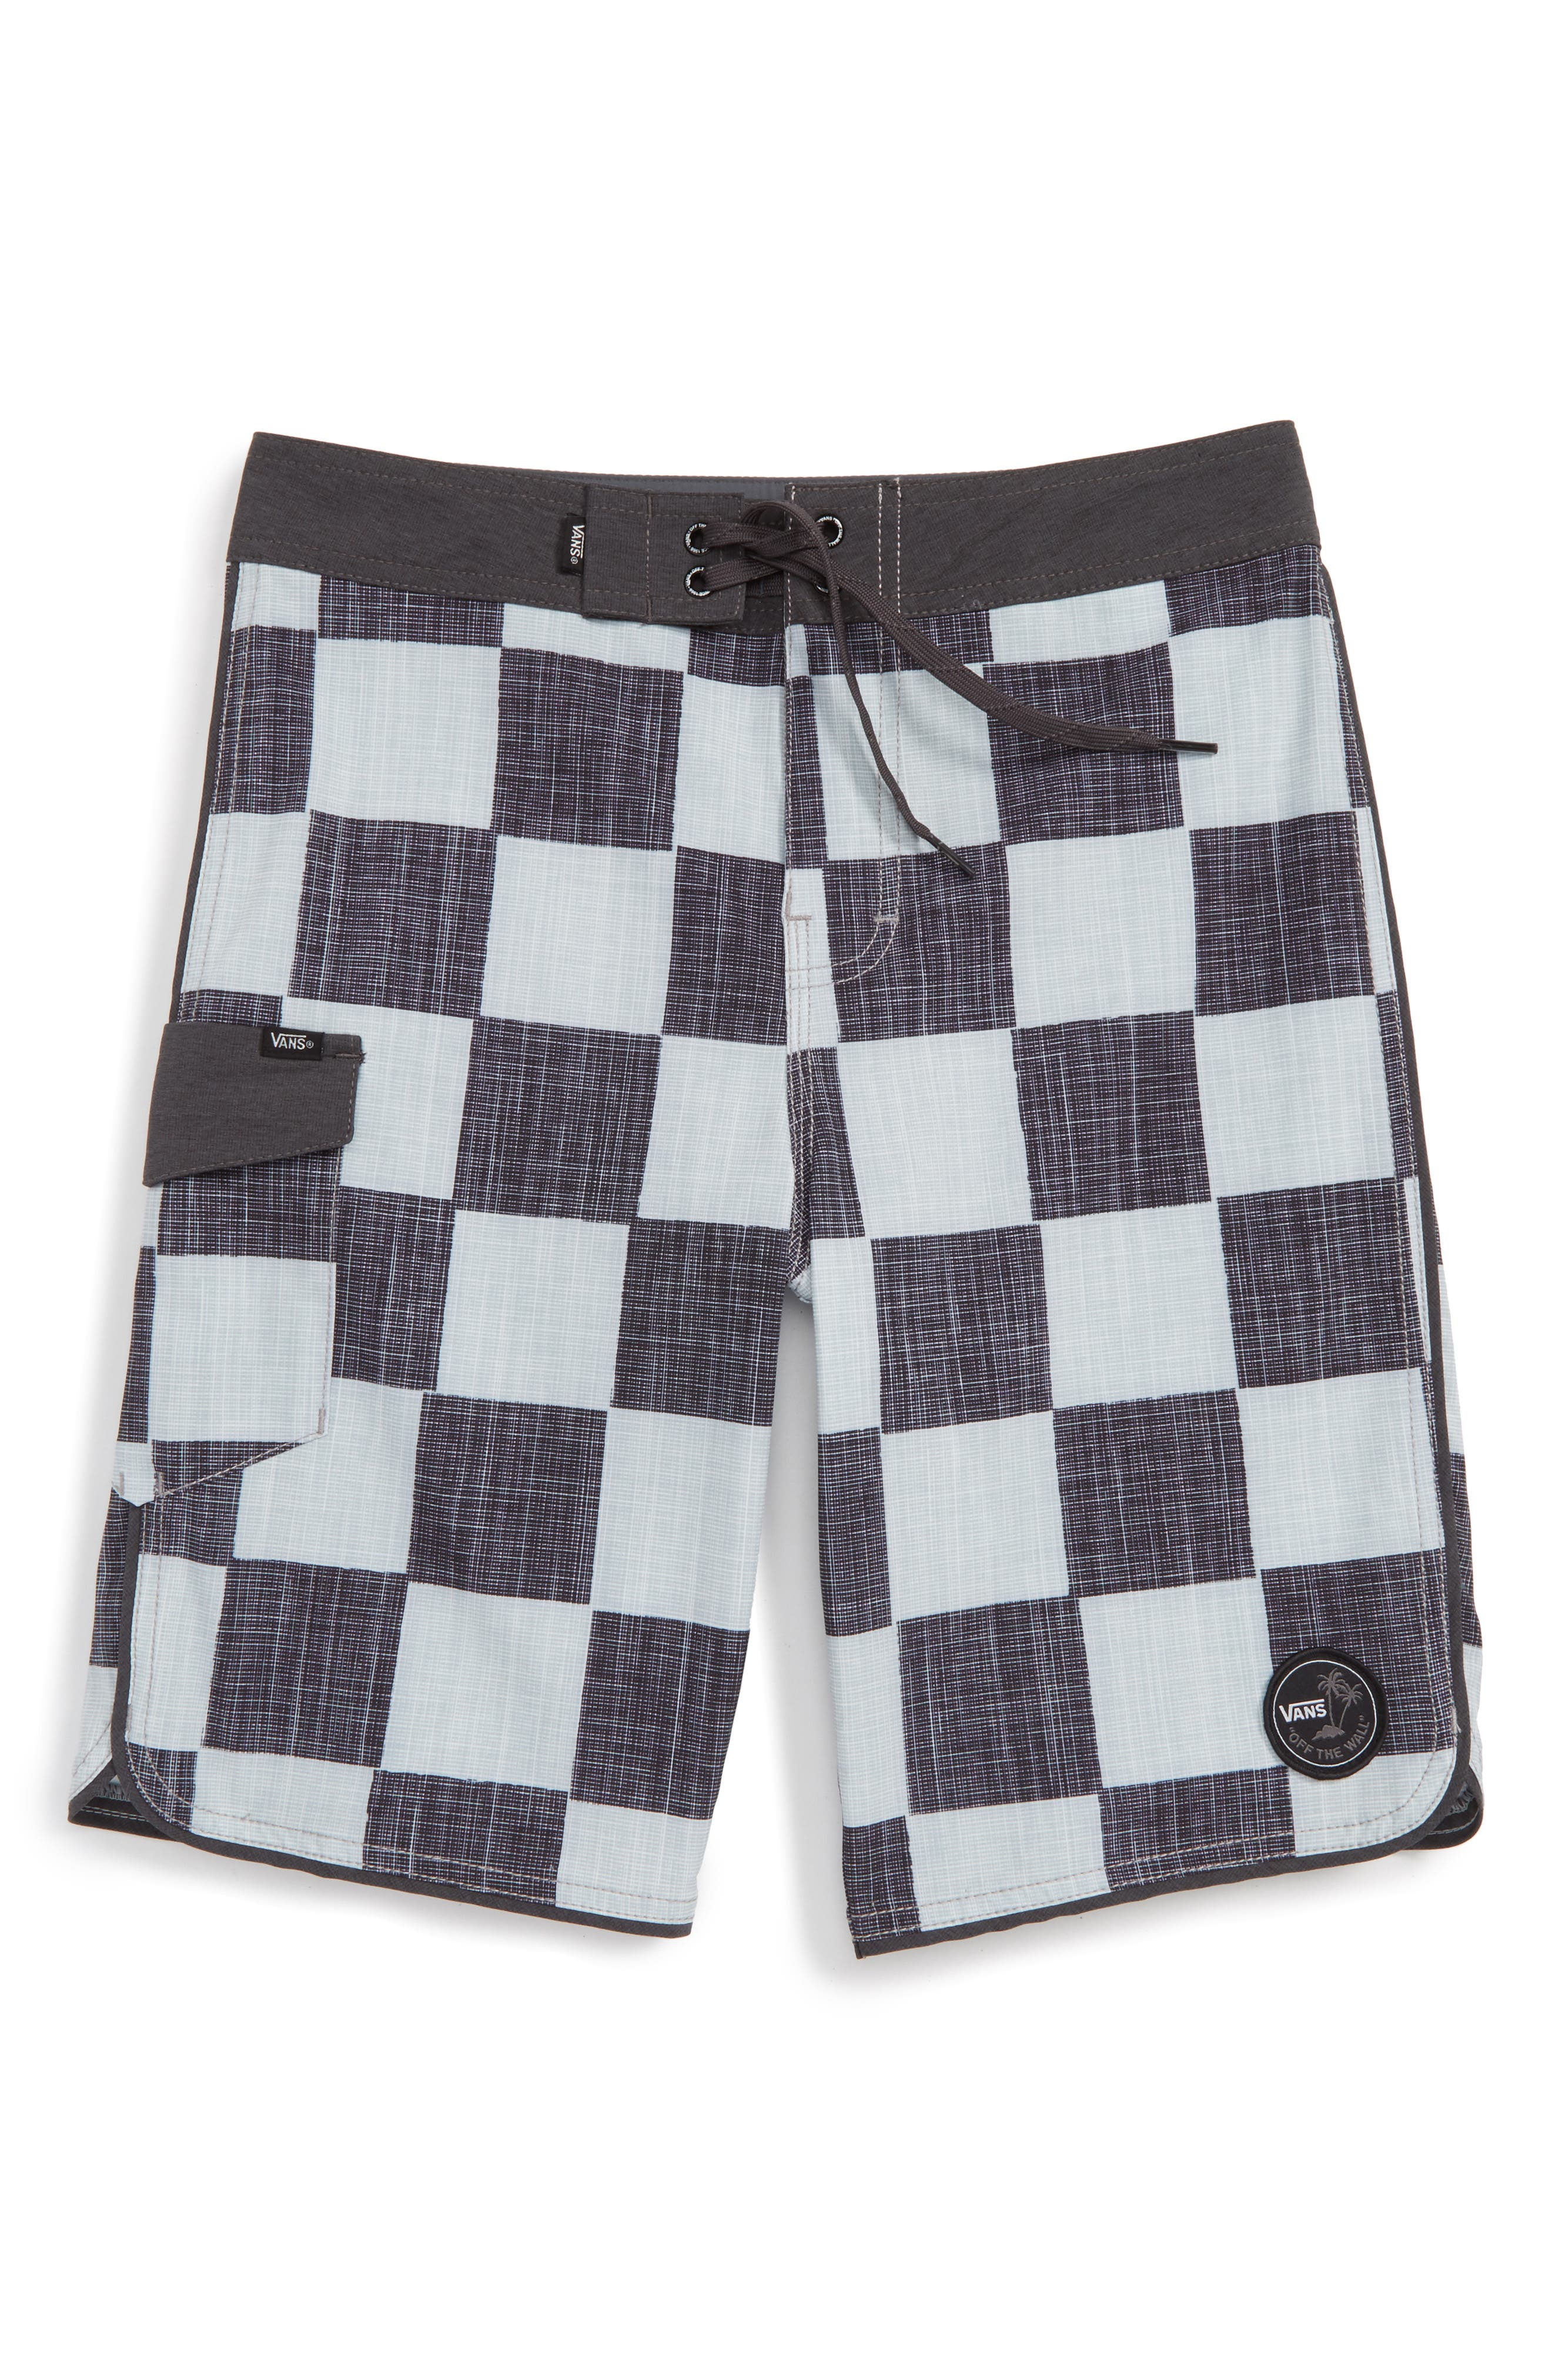 Vans 'Mixed Scallop' Board Shorts (Big Boys)